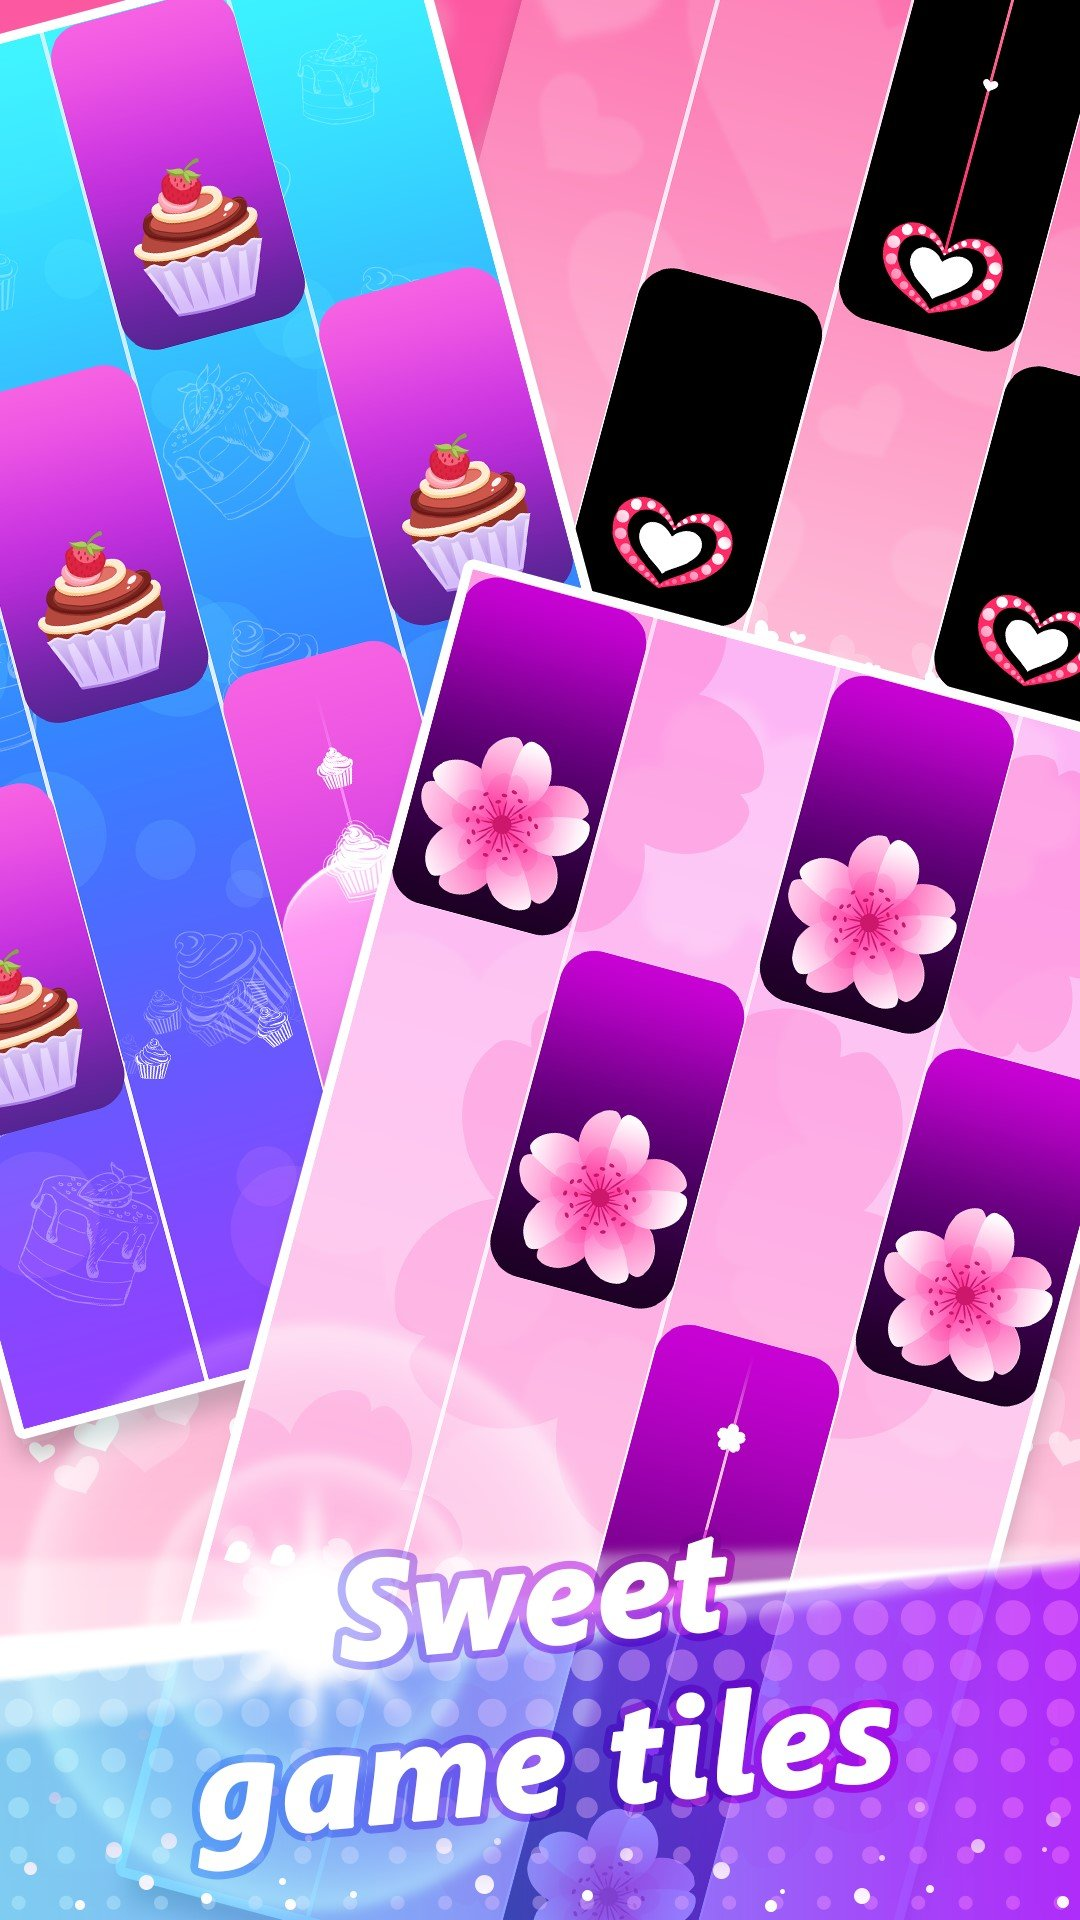 Piano Pink Tiles 2: Free Music Game Alternatives and Similar